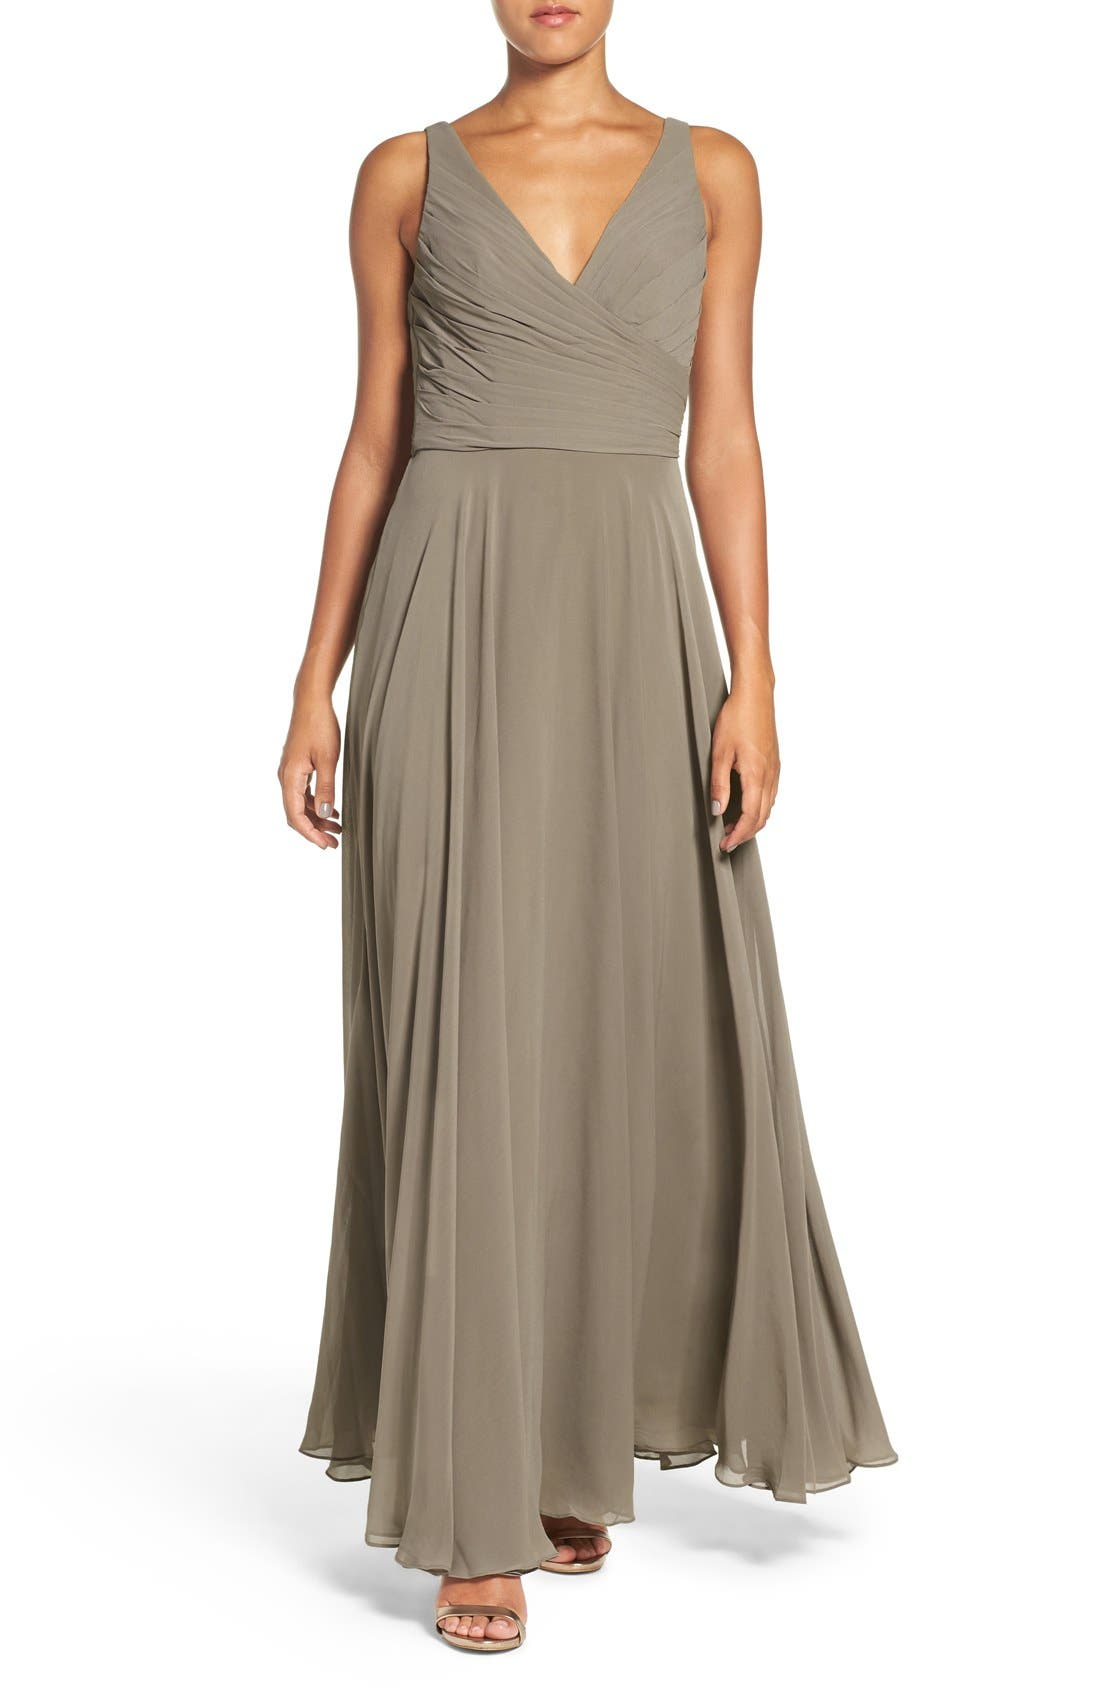 Karen V-Neck A-Line Chiffon Gown, Main, color, 020